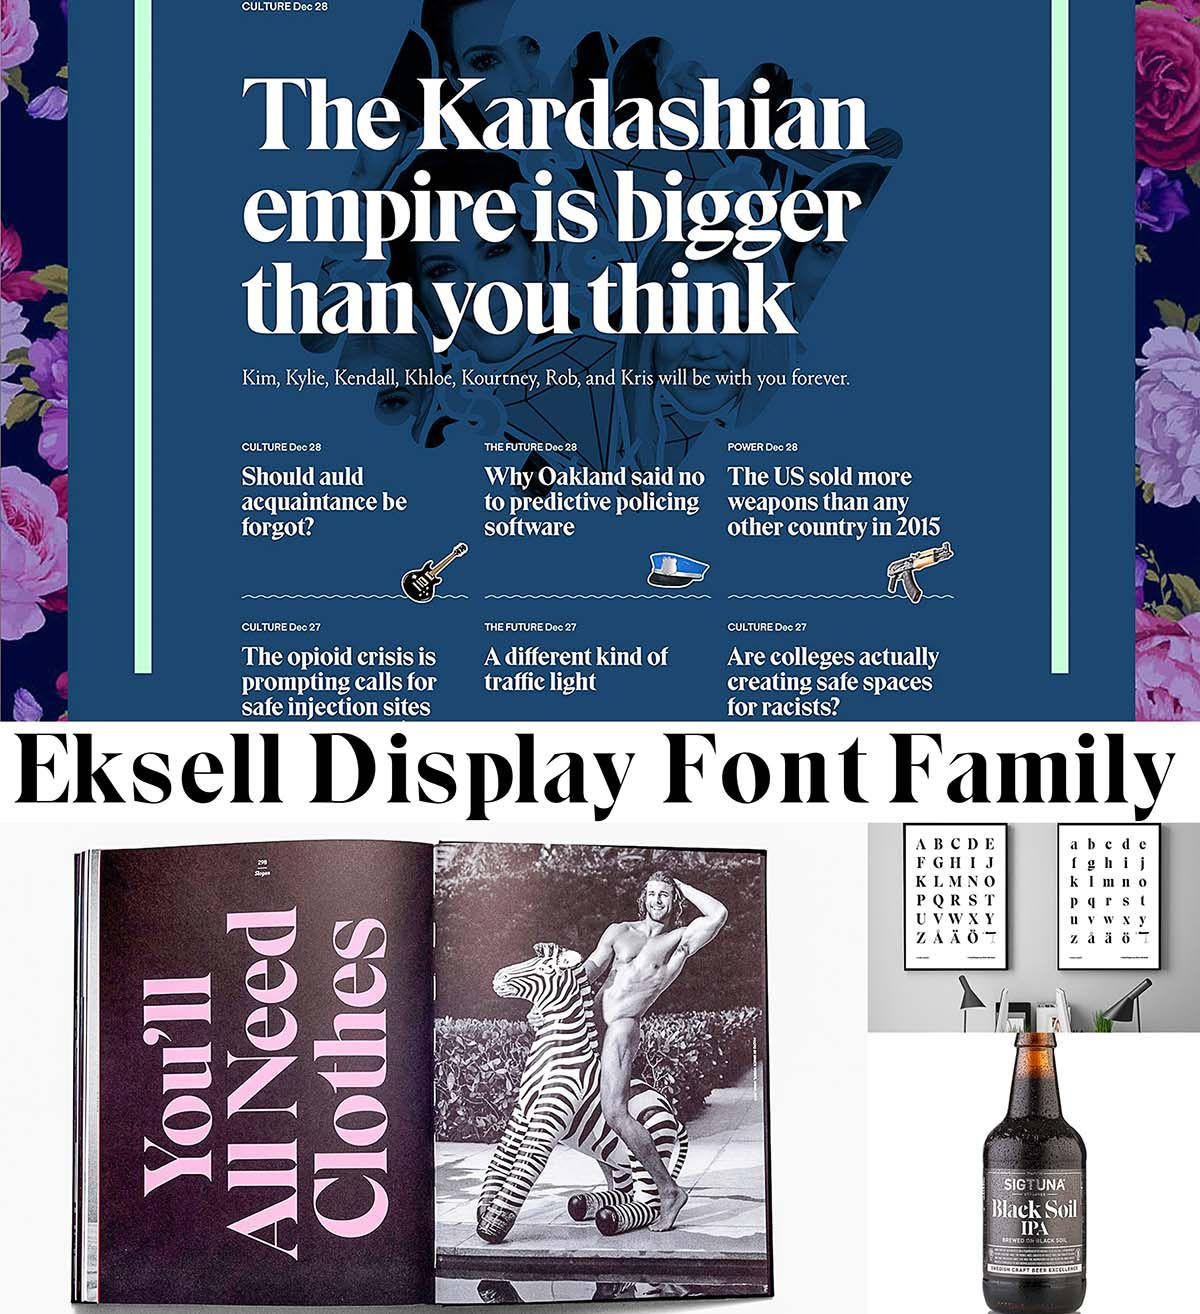 Eksell display font family | FONTS for FREE! | Font family, Fonts